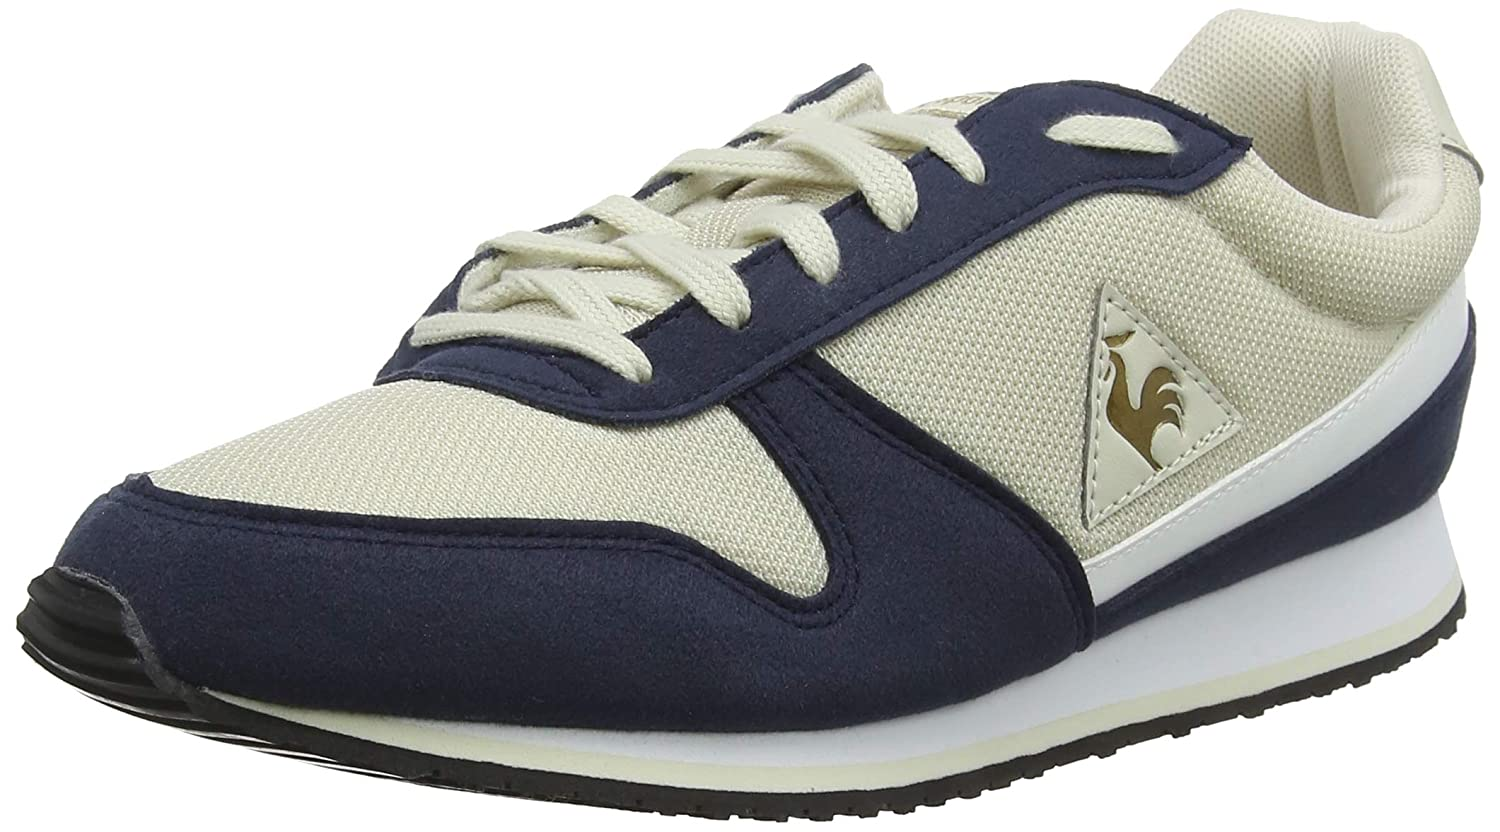 Le Coq Sportif Damen Alpha Ii W Sport Dress Blau Turtle Dove Turnschuhe